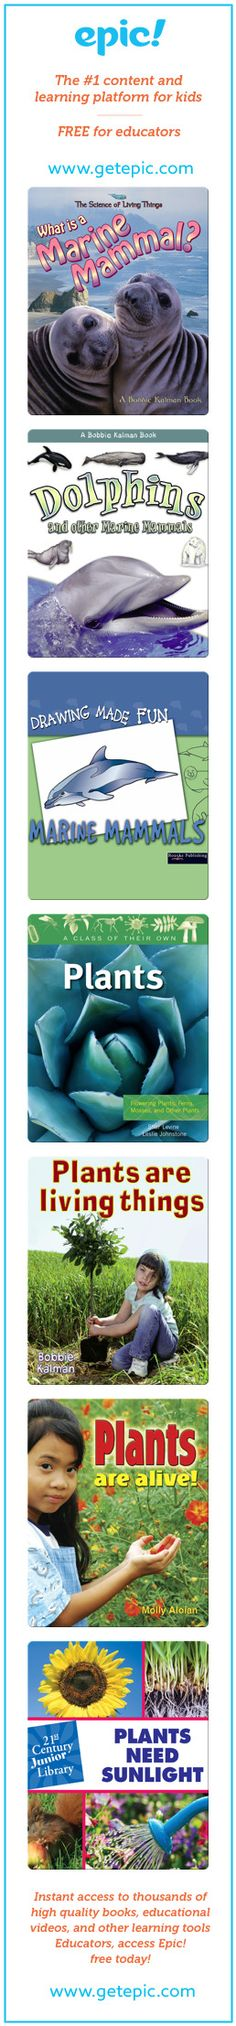 yr 1 biology books - Titles in this collection: What is a Marine Mammal?, Dolphins and other Marine Mammals, Drawing Made Fun: Marine Mammals, Plants: Flowering Plants...